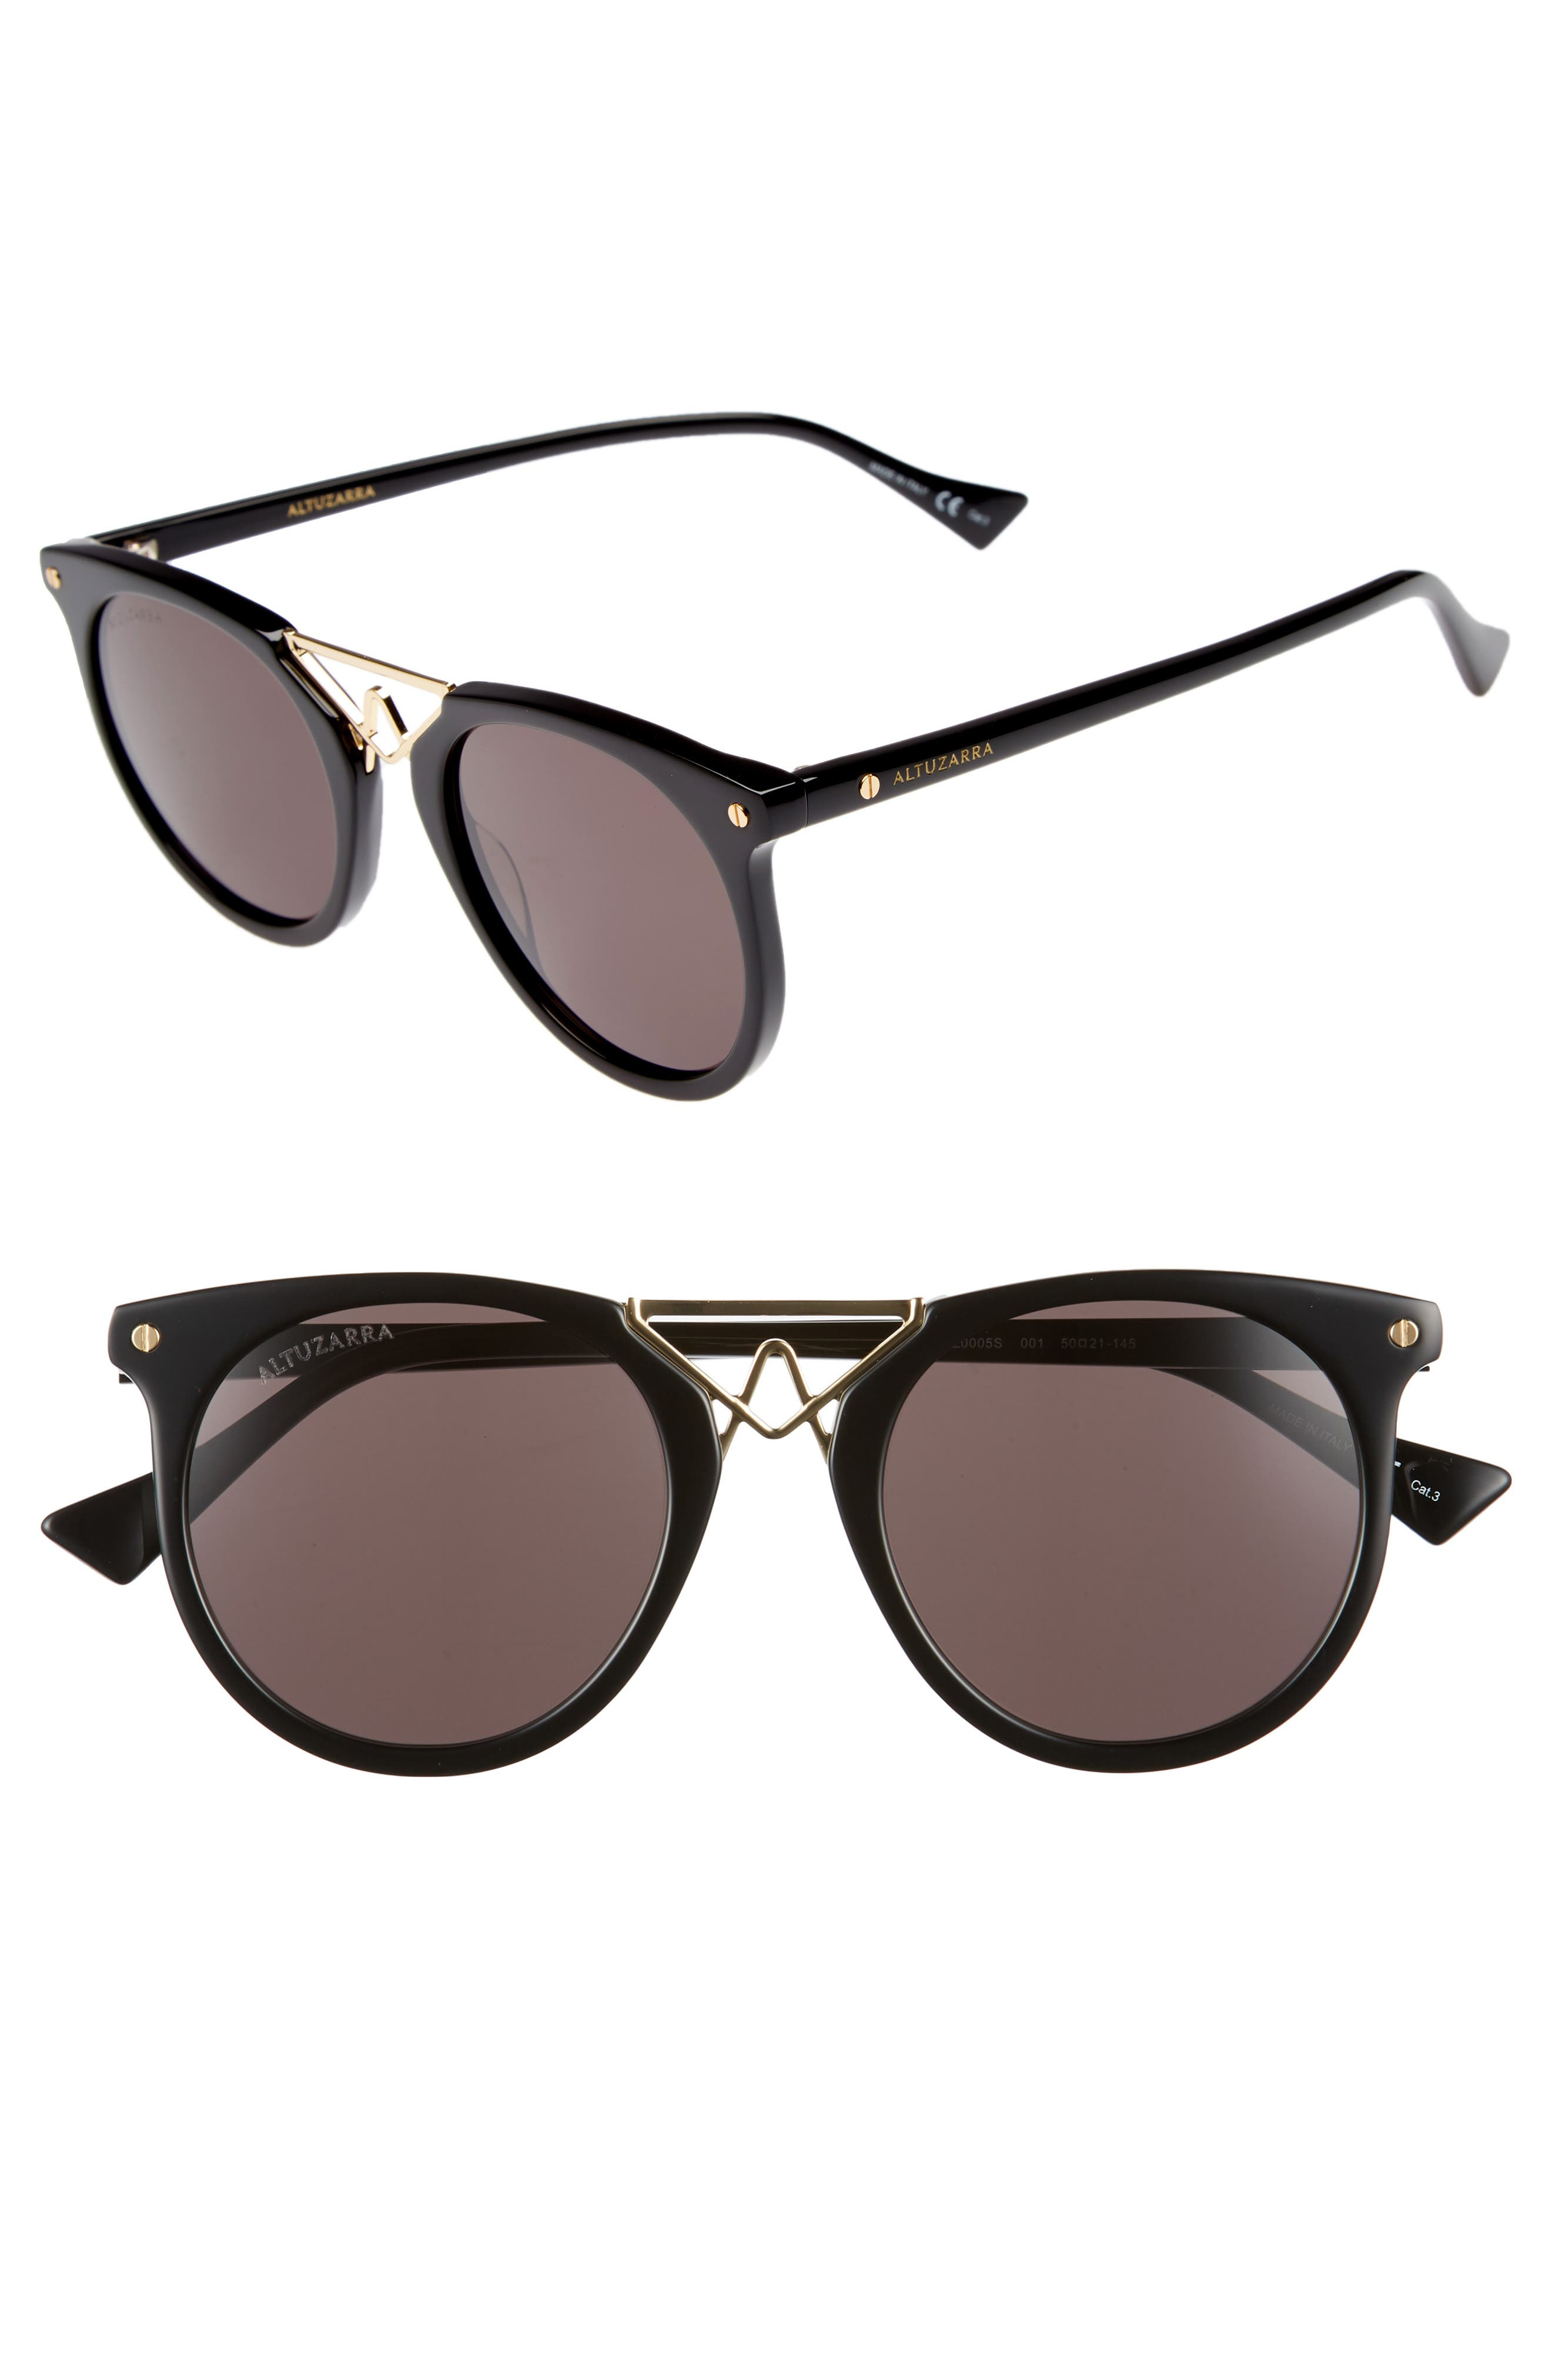 50mm Round Sunglasses,                             Main thumbnail 1, color,                             BLACK/ GOLD